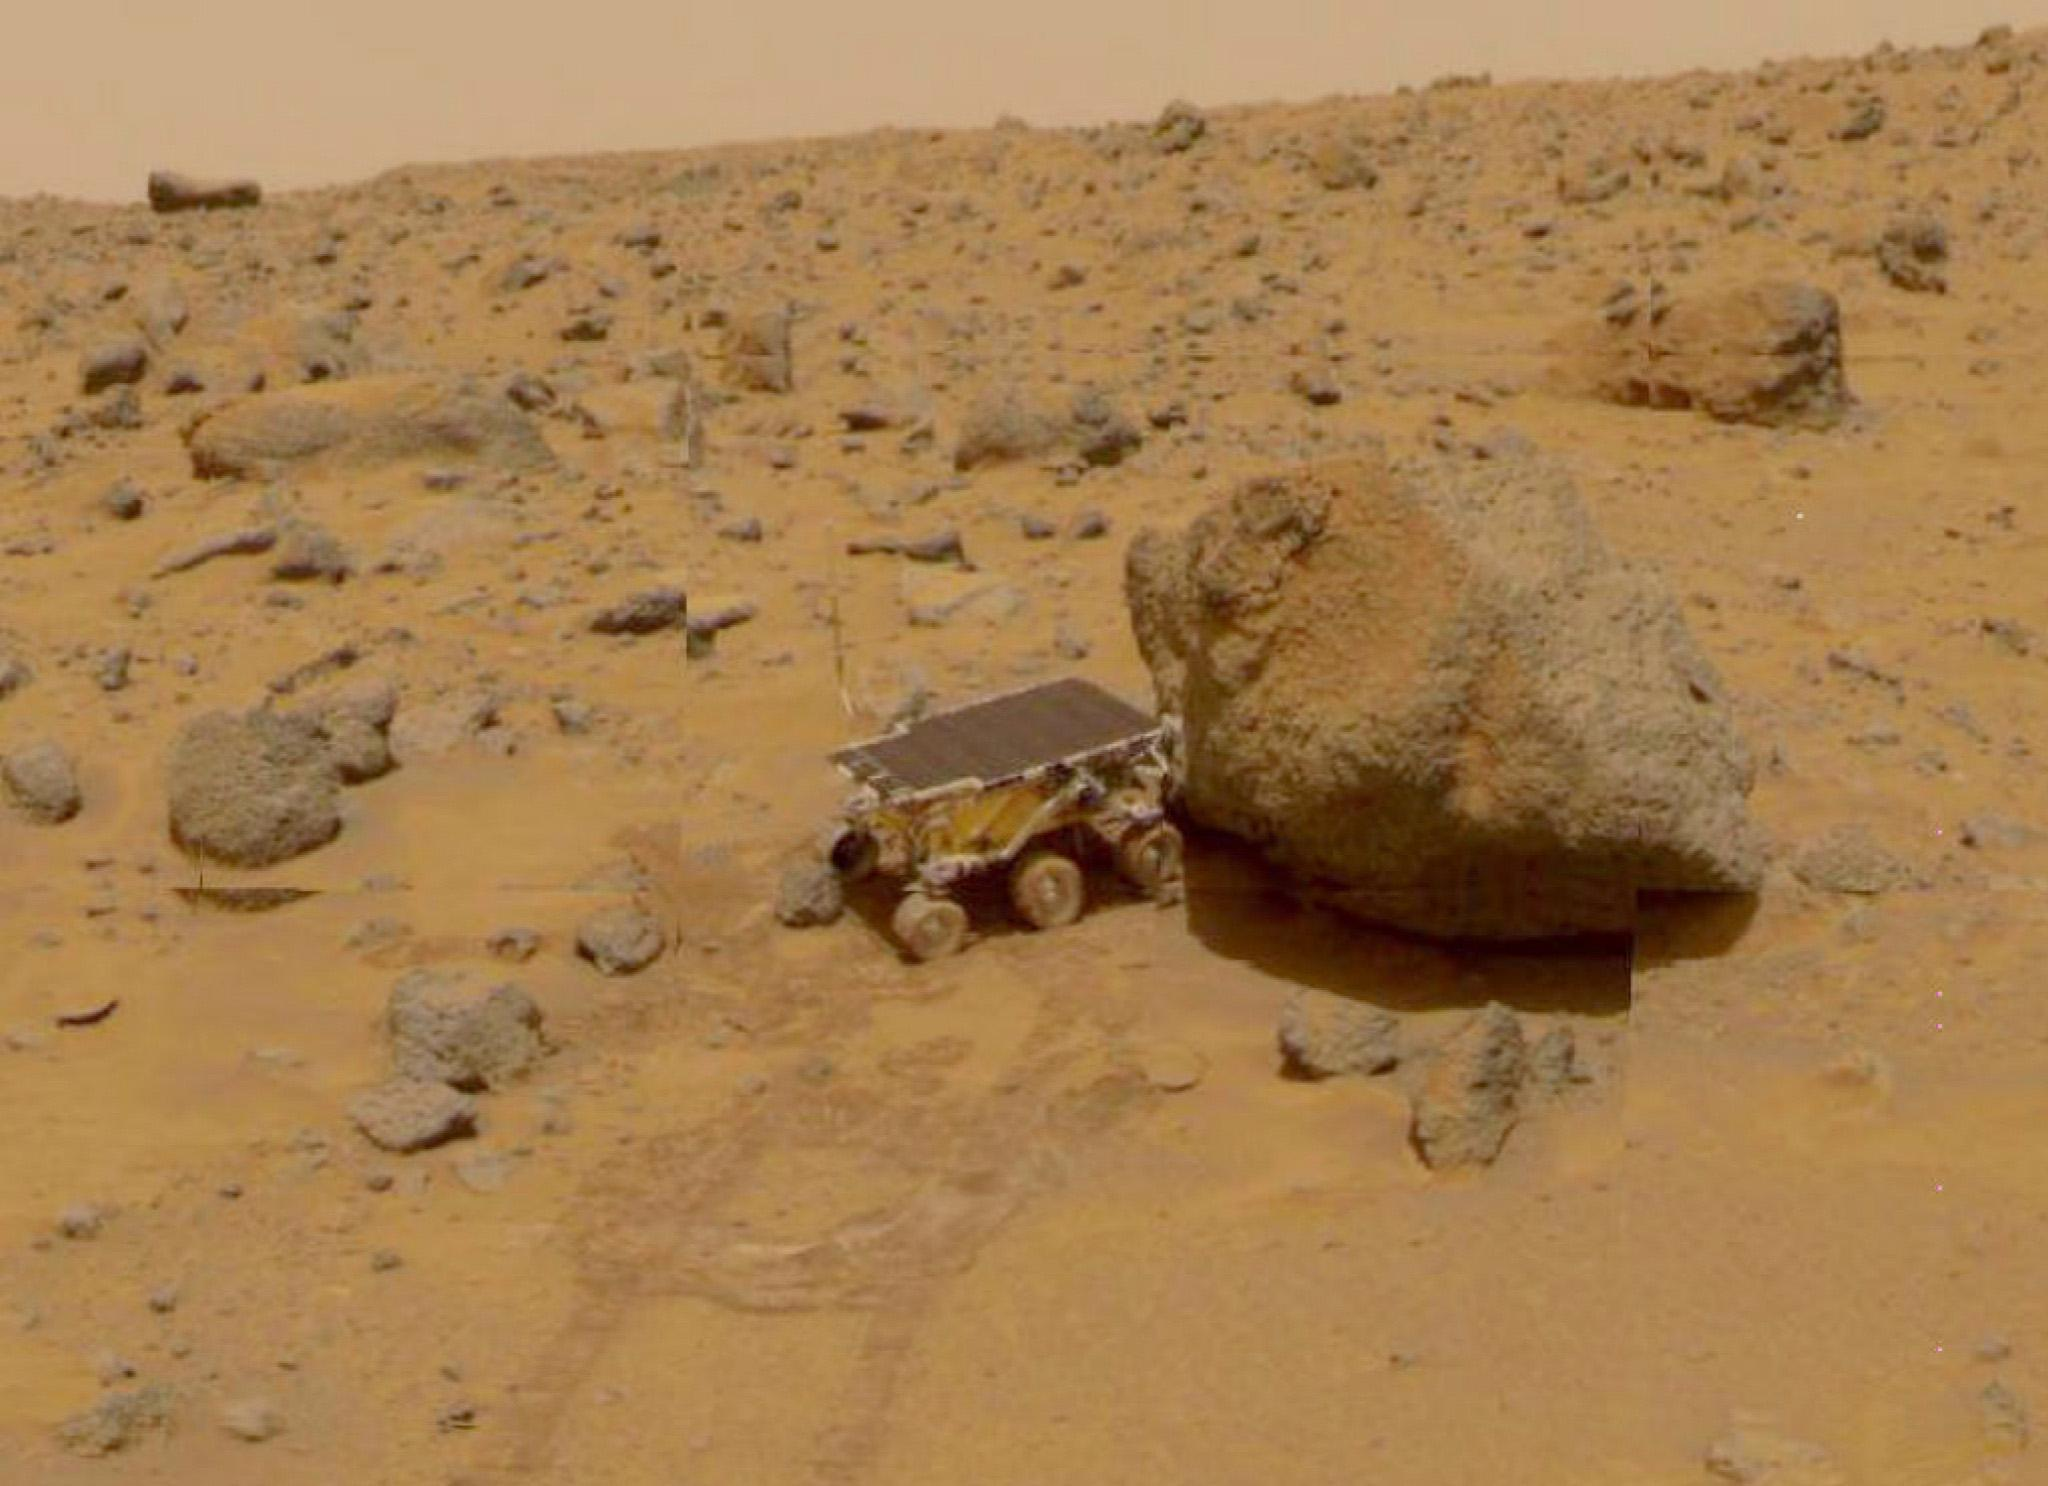 Living On Mars: First City On Red Planet Planned By United Arab Emirates In 'Mars 2117' Project